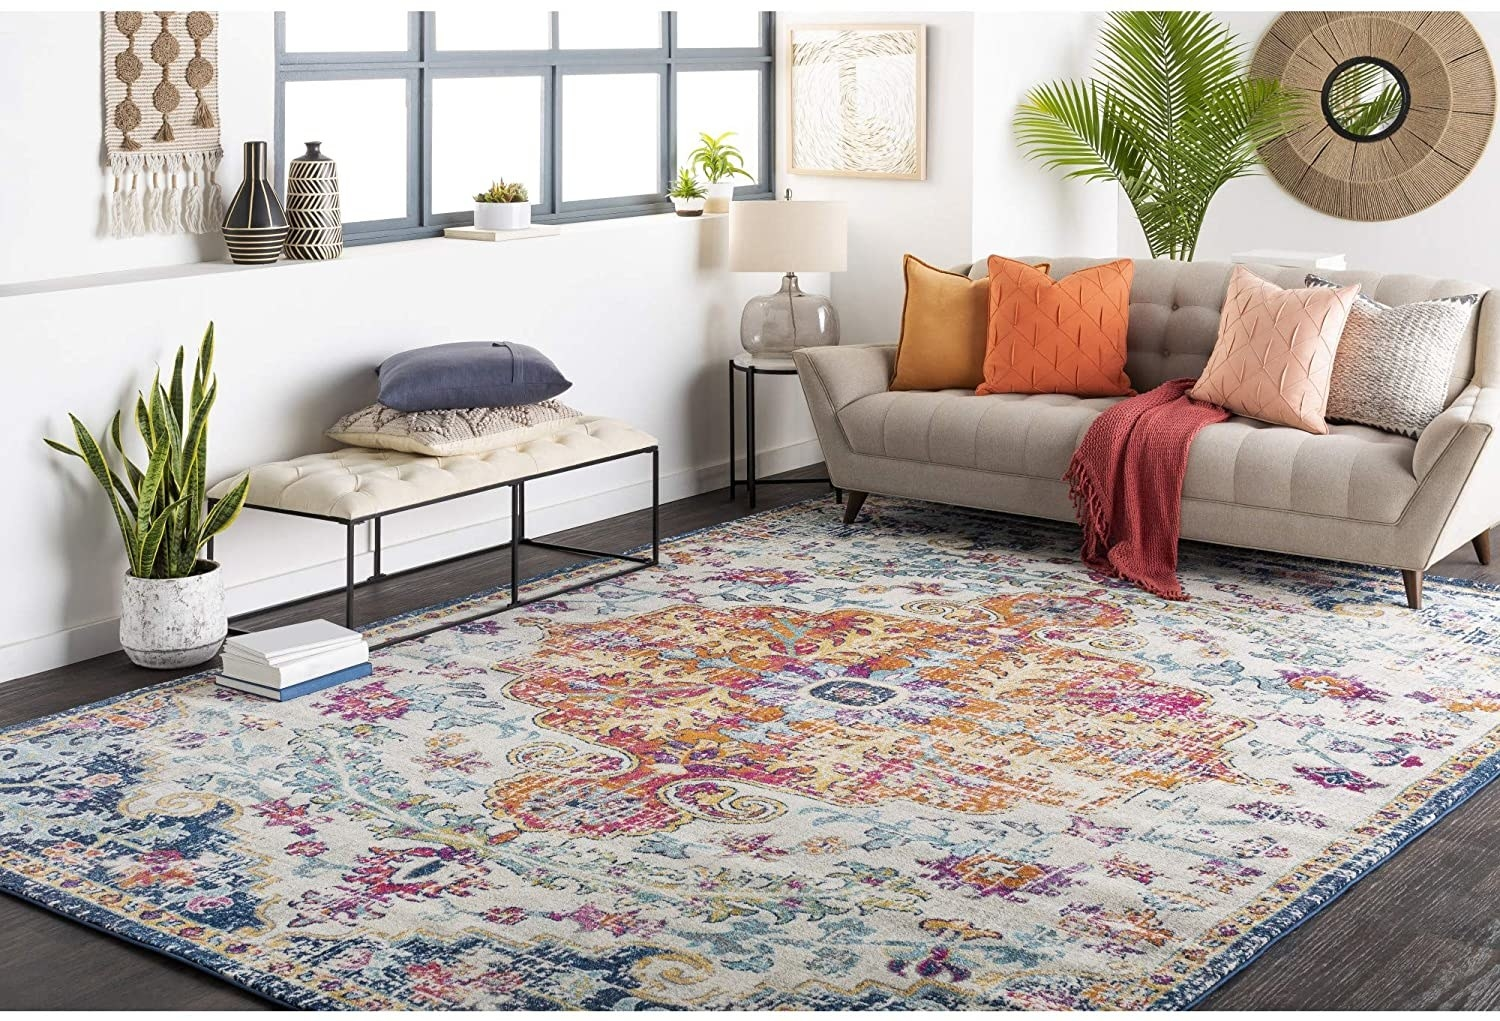 Patterned rug with a vintage-inspired faded look